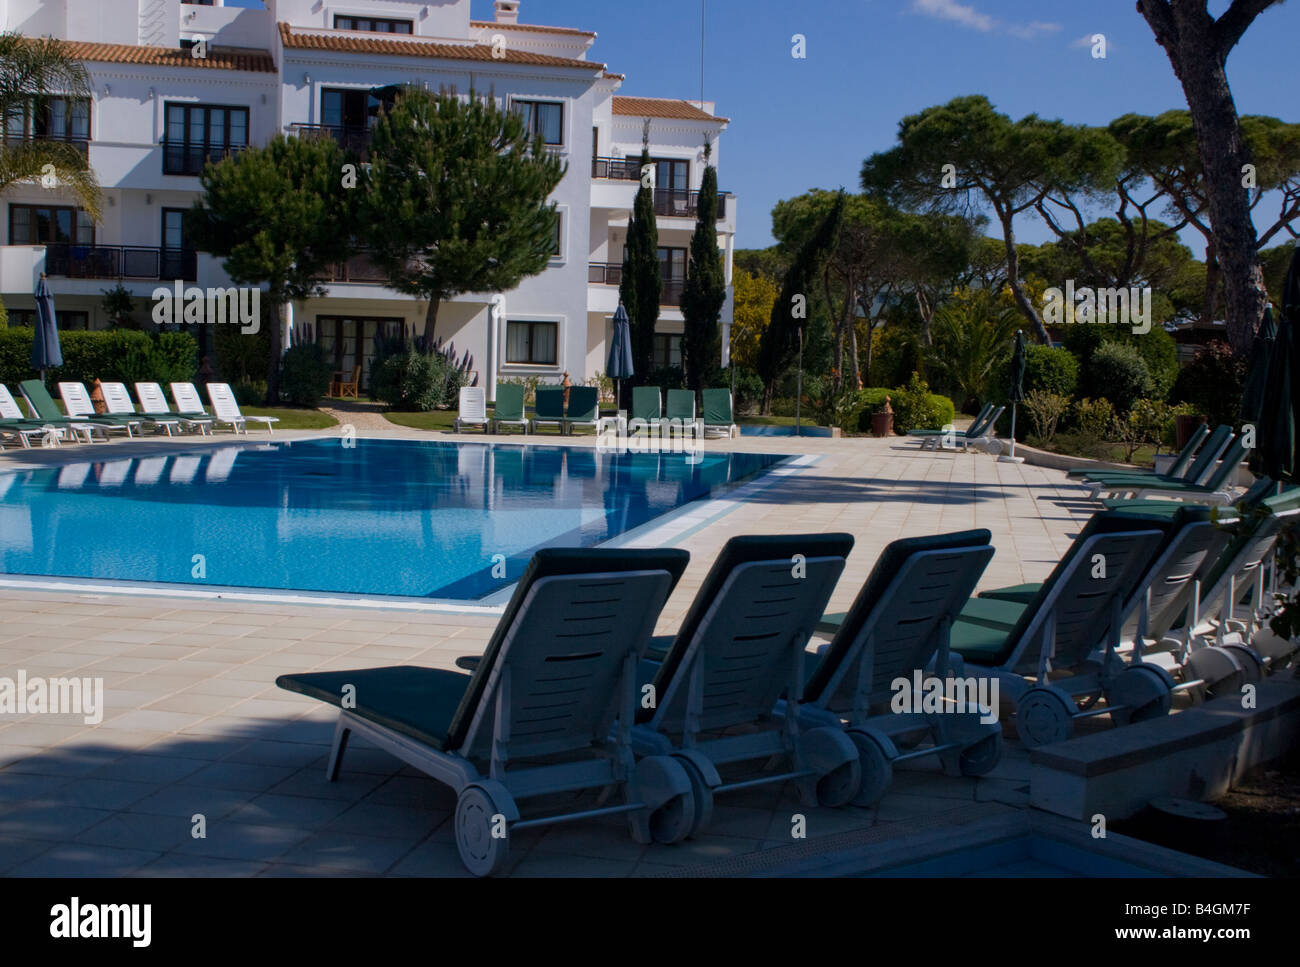 A view of the pool with loungers - Stock Image